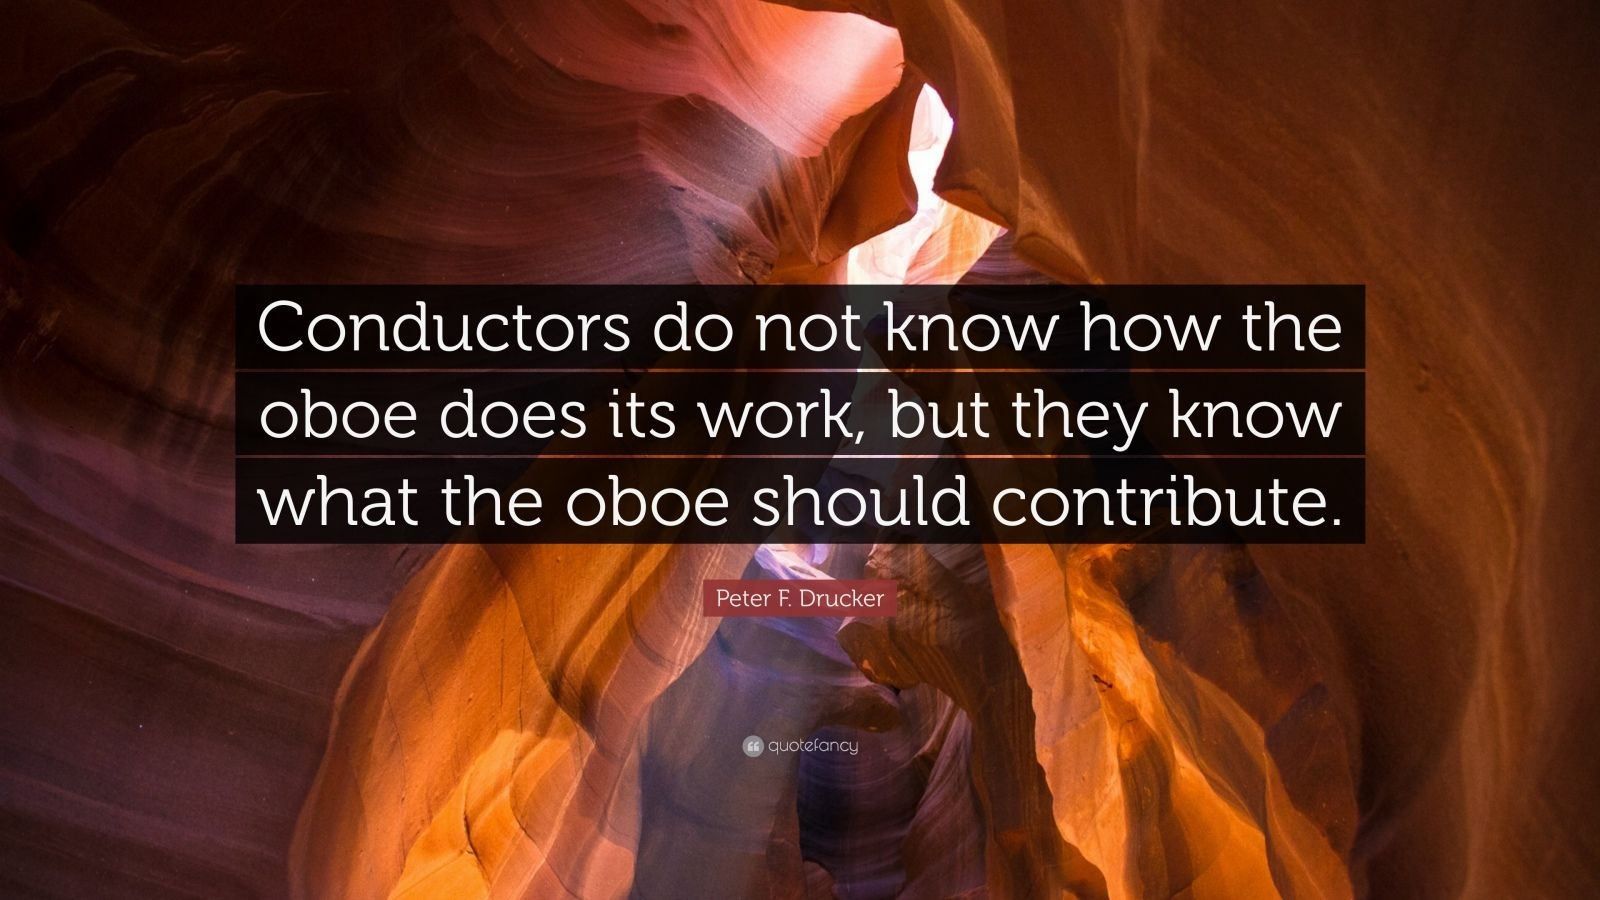 """Peter F. Drucker Quote: """"Conductors do not know how the oboe does its work, but they know what the oboe should contribute."""""""